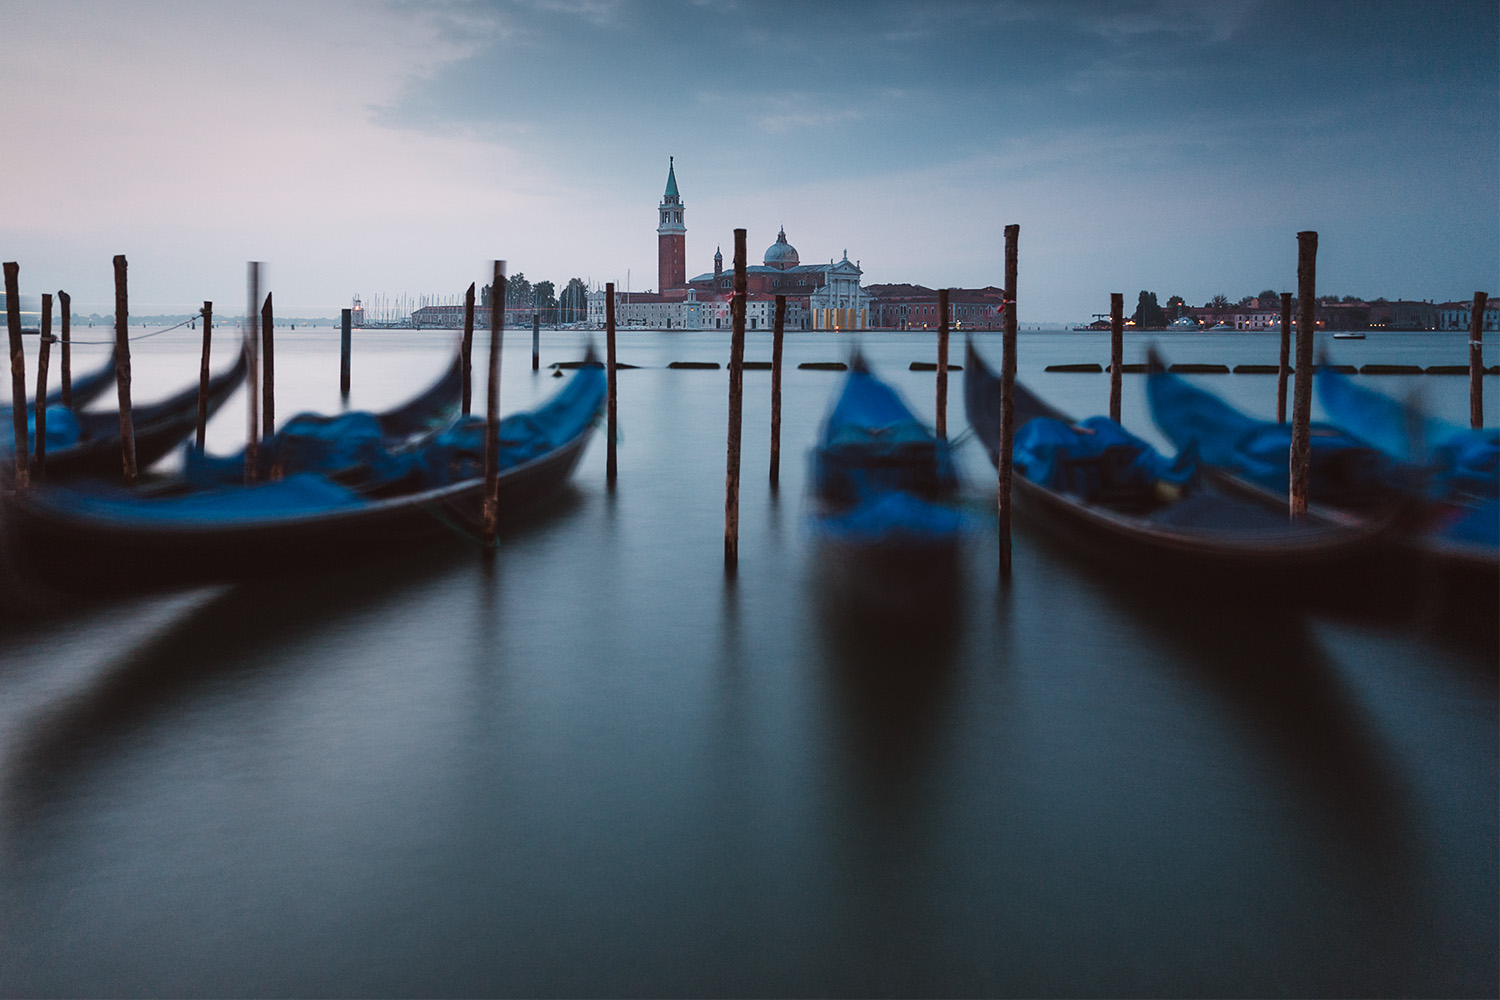 travel-photography-venice-canal-gondolas.jpg